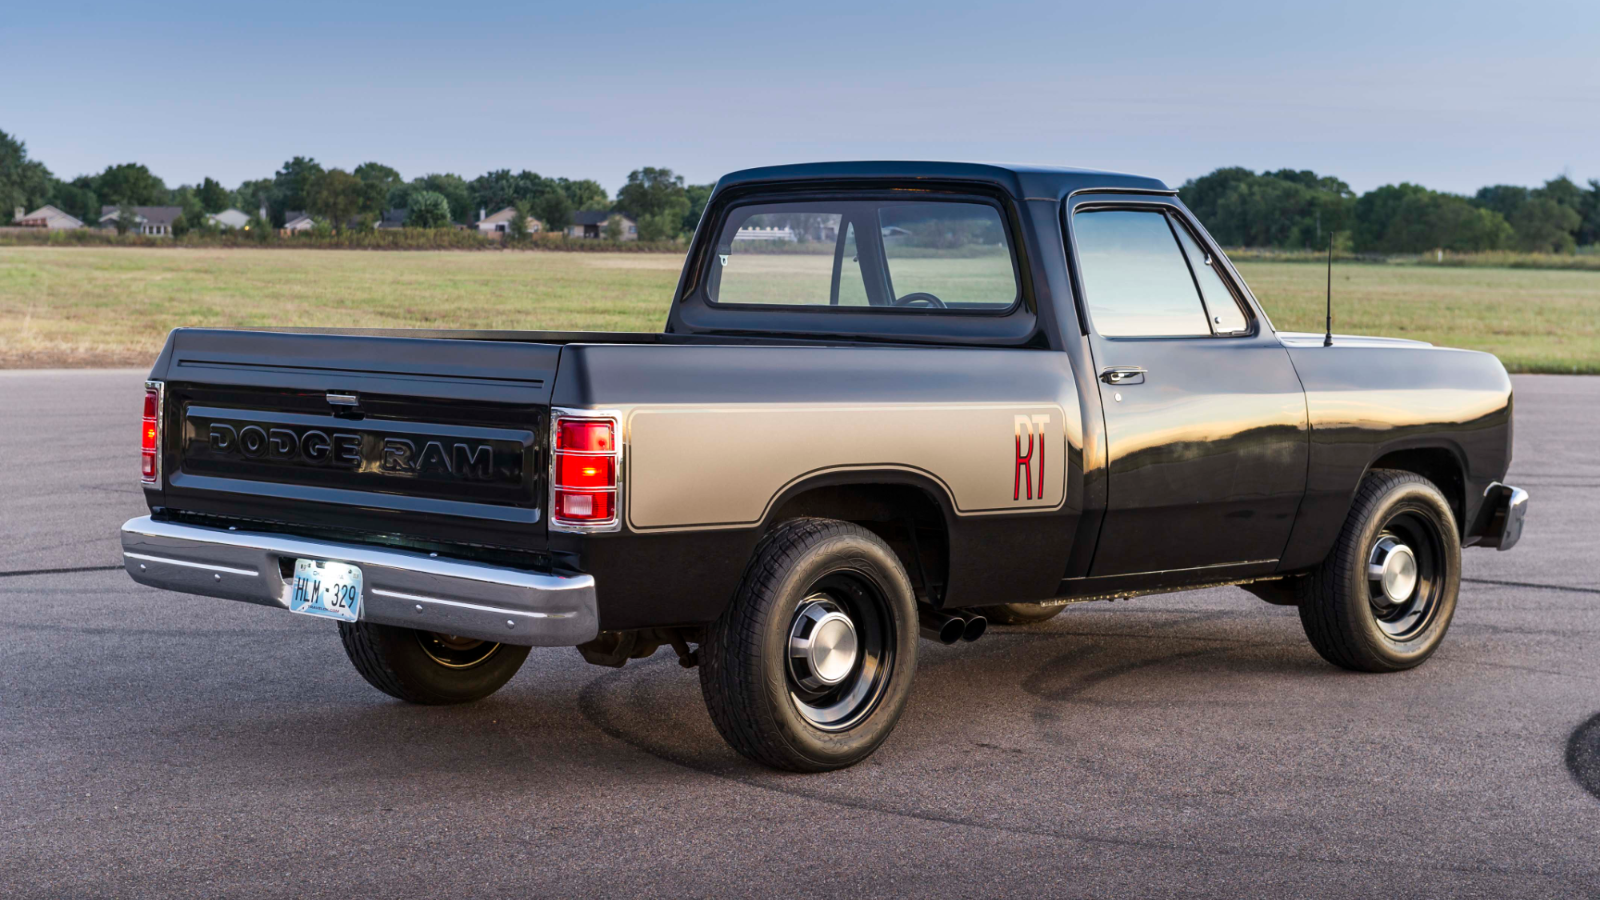 1986 Dodge Ram Short Bed is a Blast of Awesomeness